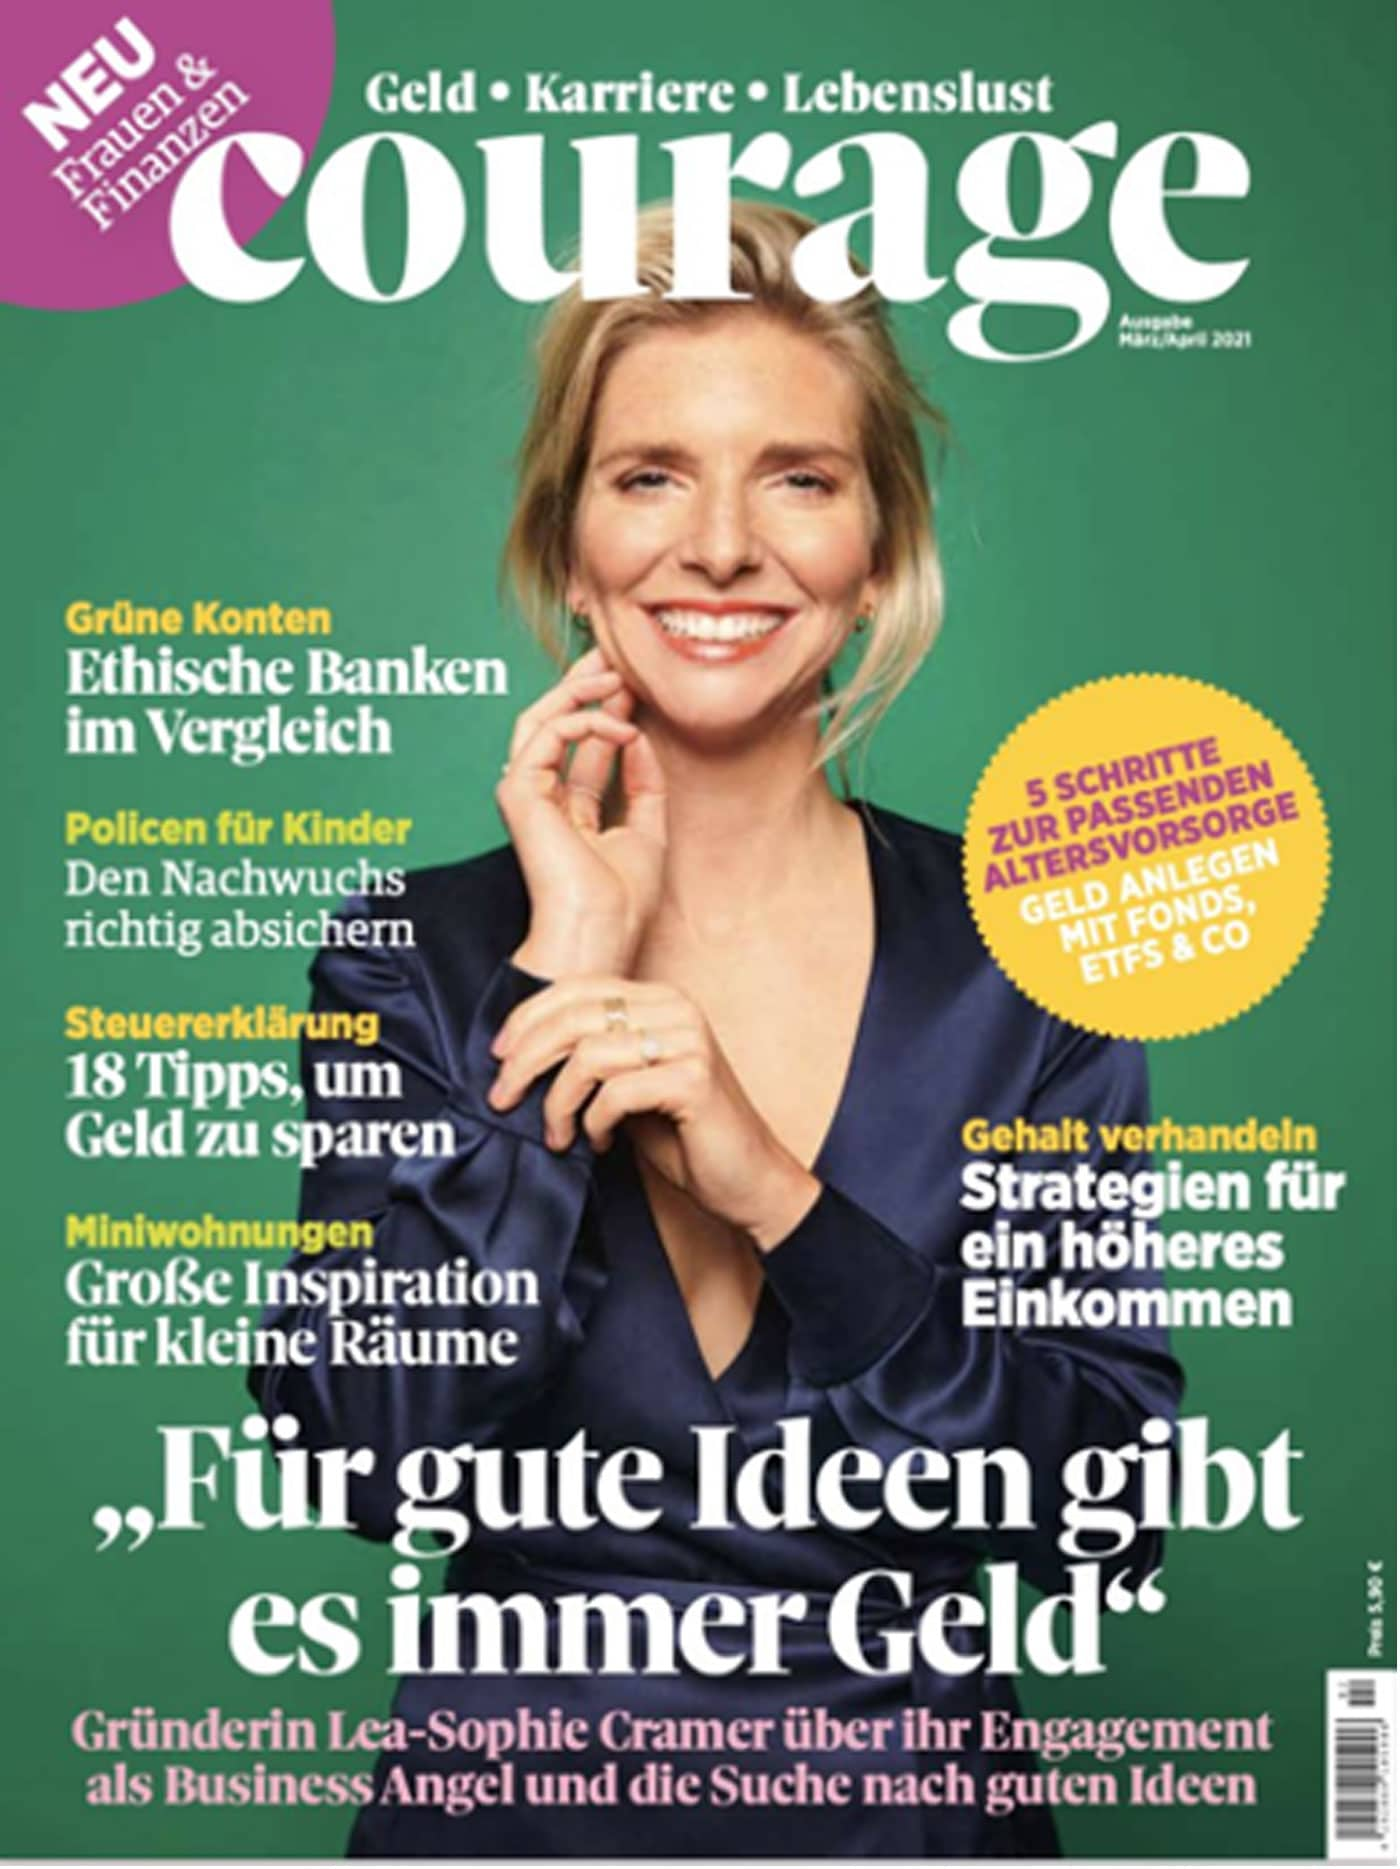 Cover des Magazins Courage // HIMBEER